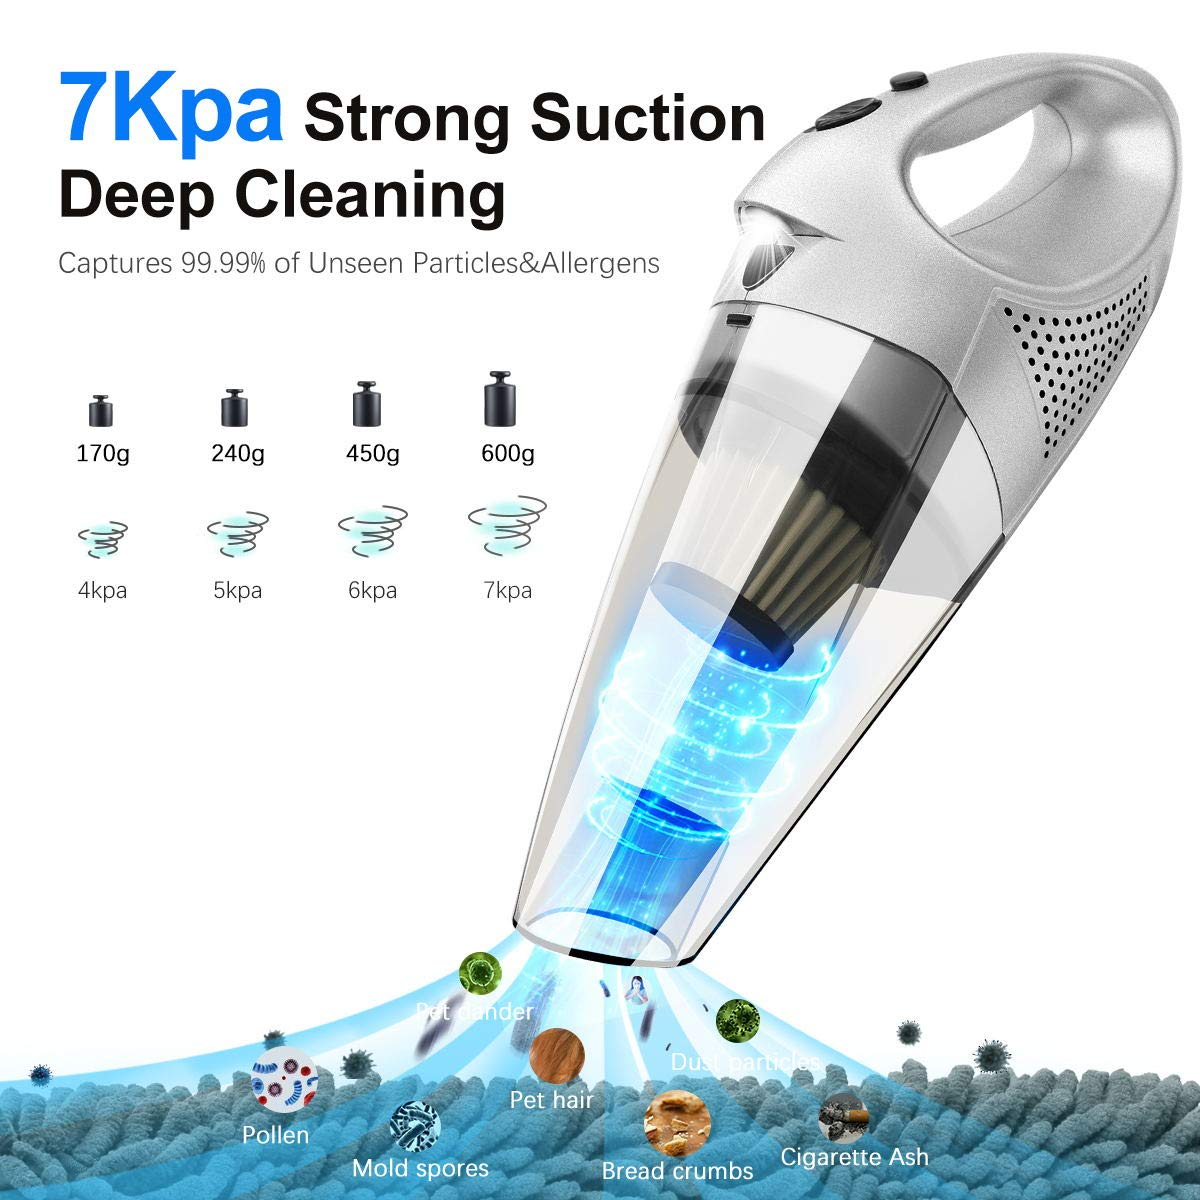 Handheld Vacuum Cleaner Cordless 7kpa Powerful Suction Mini Car Vacuum Cleaner with Stainless Steel HEPA Filter,LED Light,Rechargeable Wet Dry Hand Vac for Home Pet Hair Car Cleaning